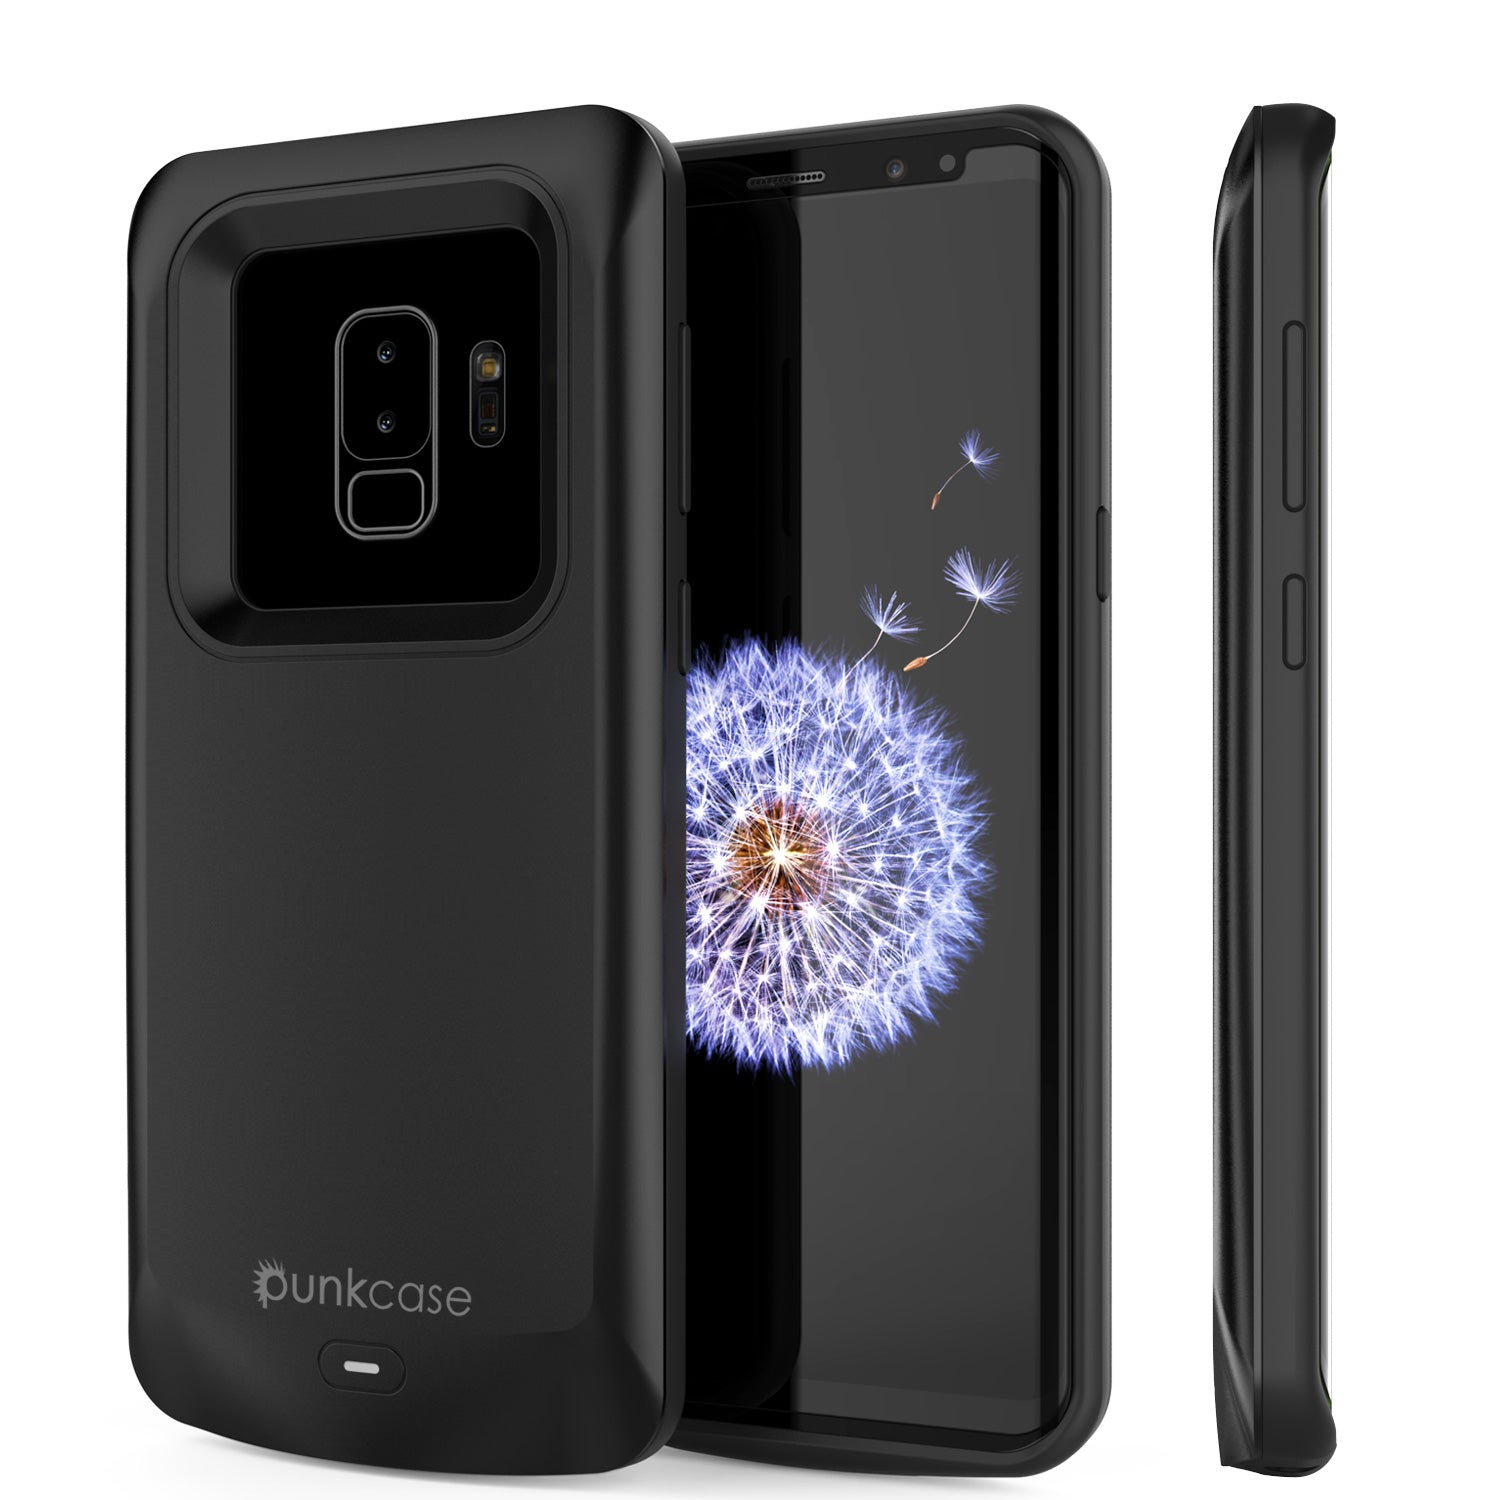 separation shoes 72ad6 d014f Galaxy S9 PLUS Battery Case, PunkJuice 5000mAH Fast Charging Power Bank  Case [Black]